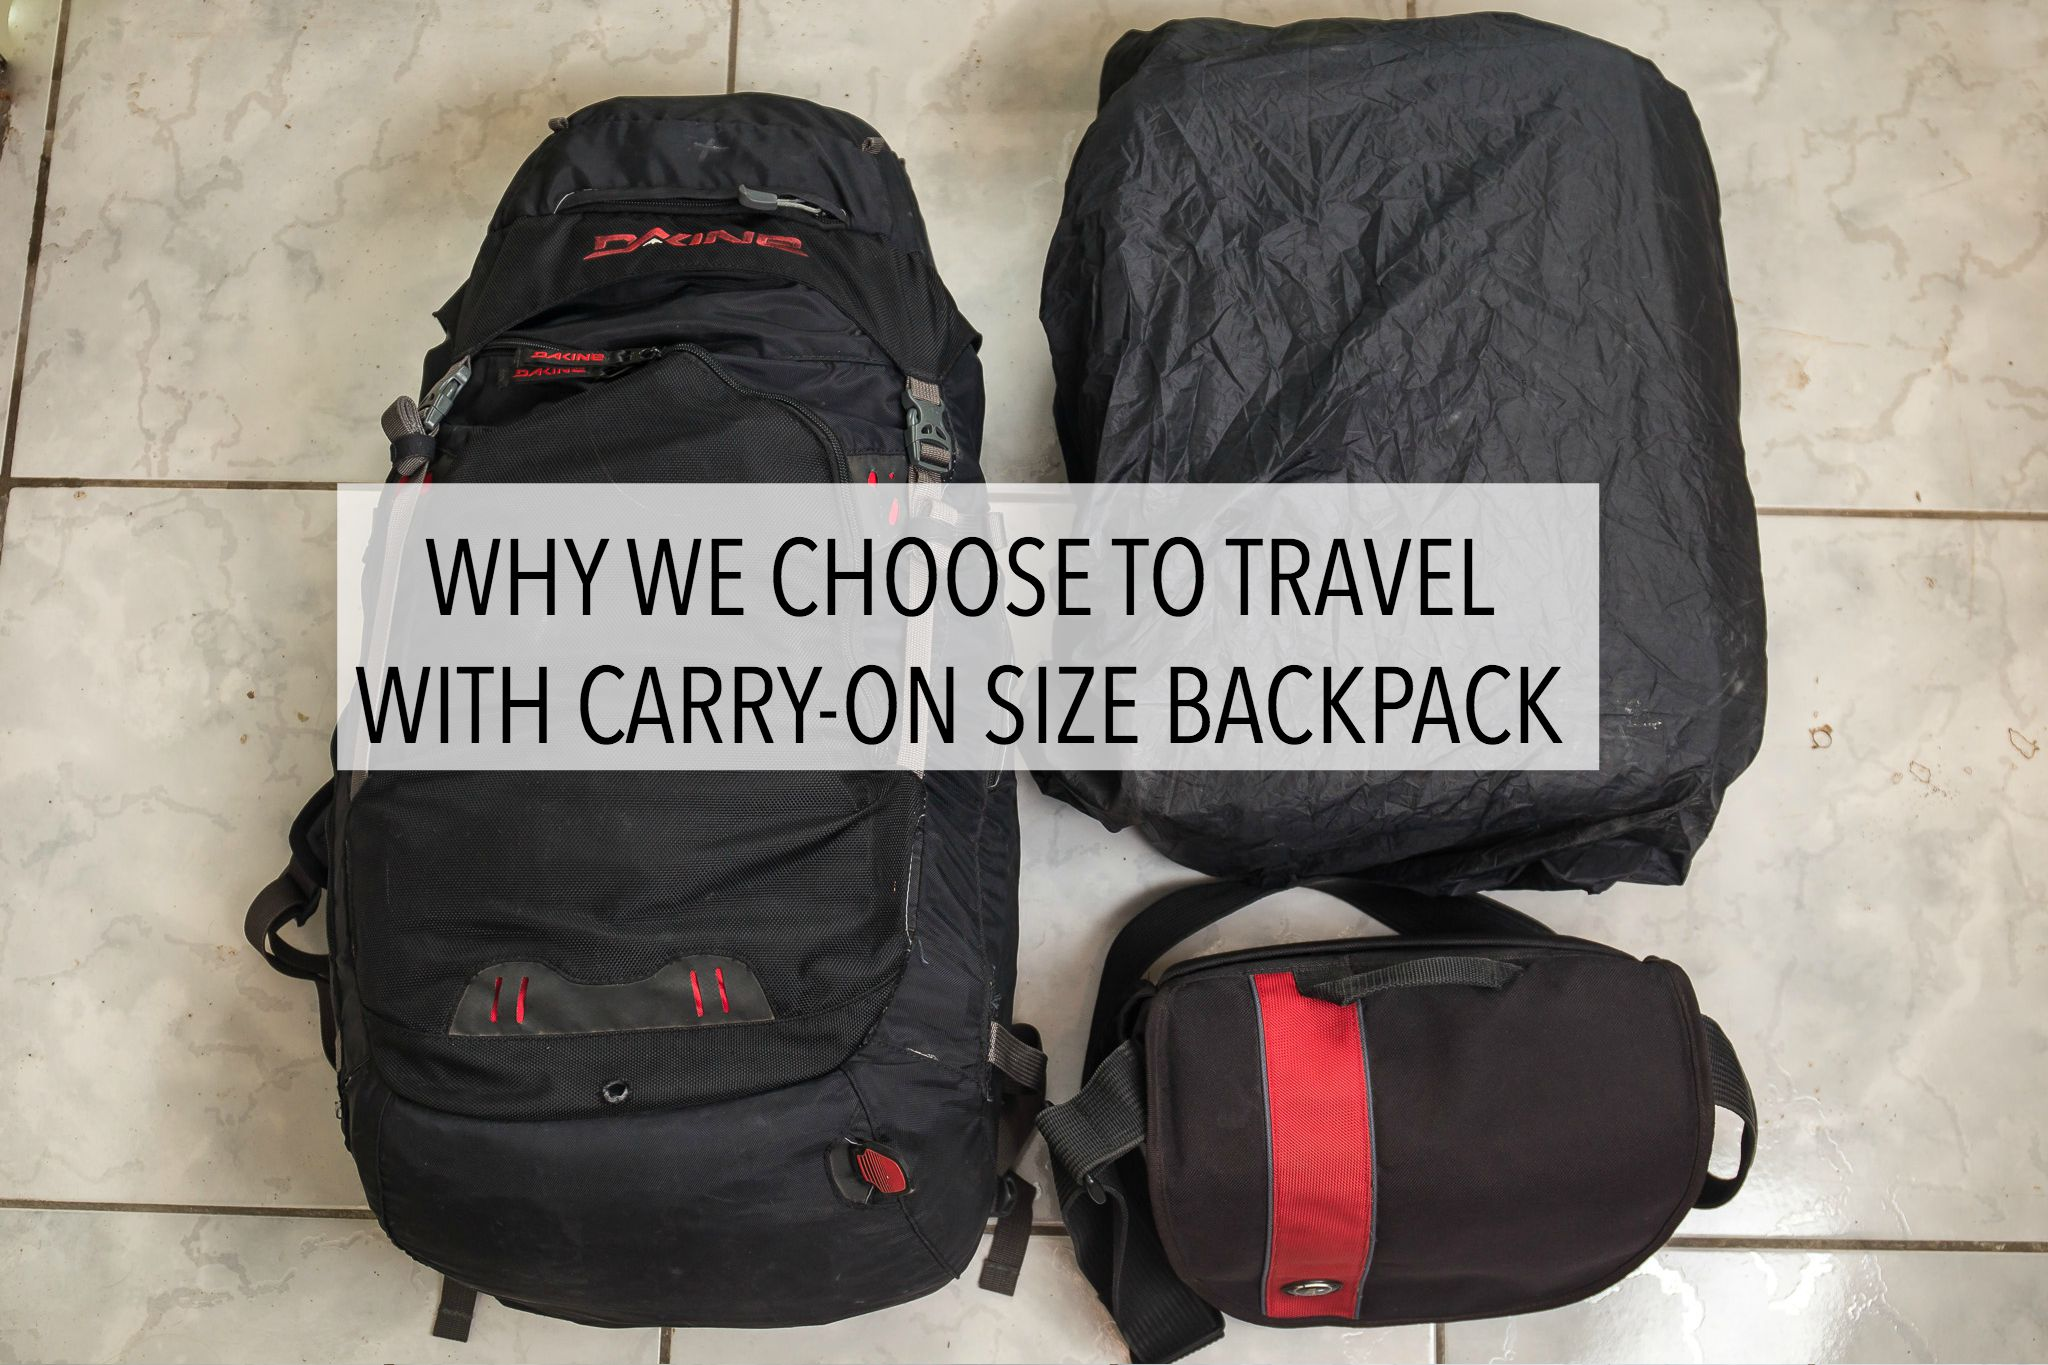 Why We Choose To Travel With a Carry-On Size Backpack ...